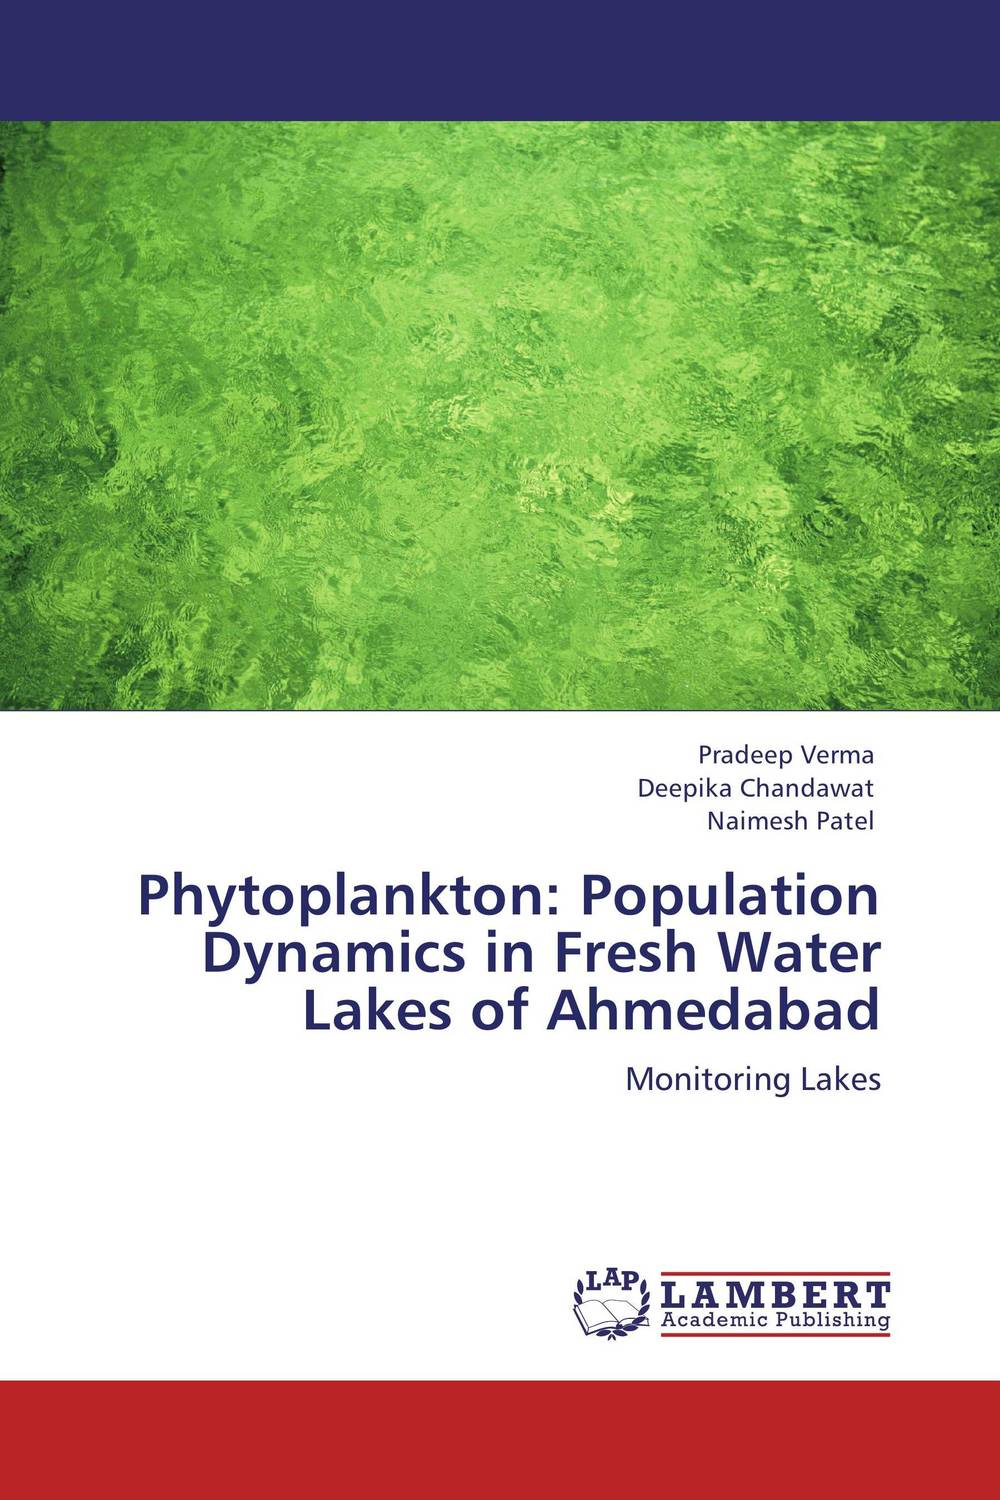 Phytoplankton: Population Dynamics in Fresh Water Lakes of Ahmedabad seeing things as they are